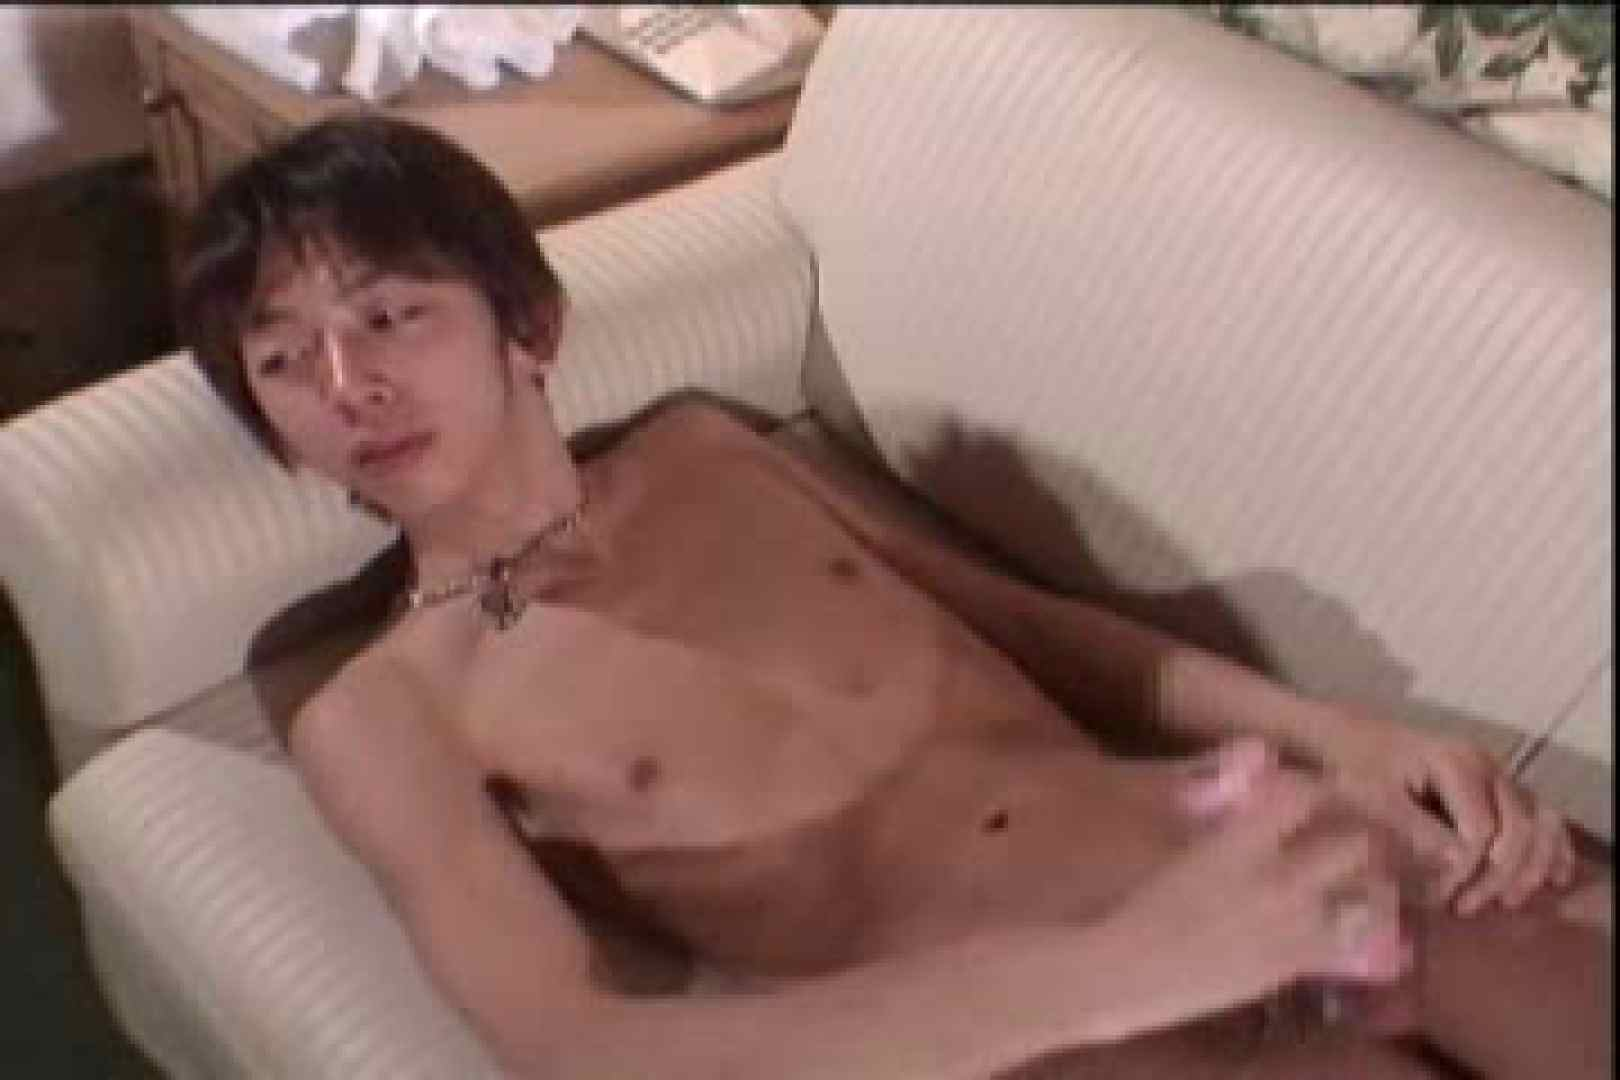 BABY FACEな包茎事情!!4FACEの快楽 射精  113pic 7